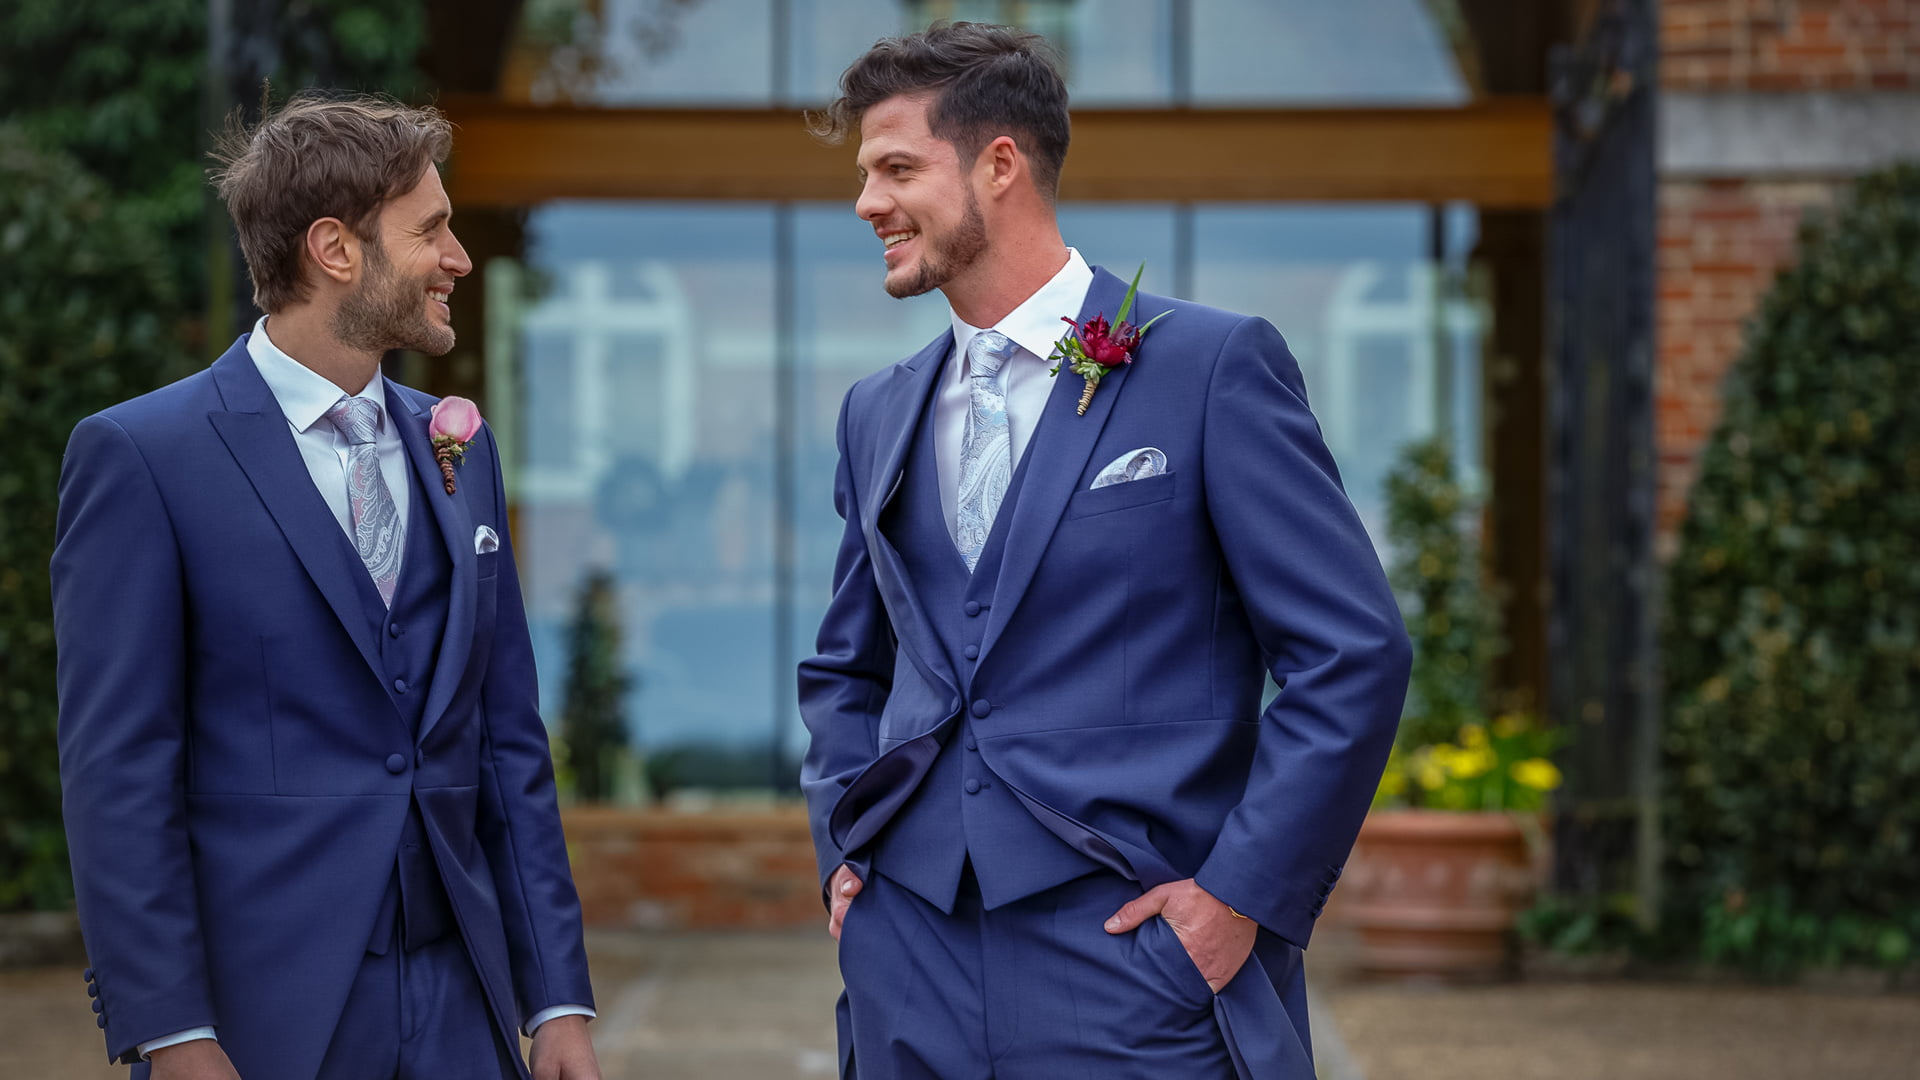 Perfect Wedding Suit Hire Exeter Pattern - Colorful Wedding Dress ...